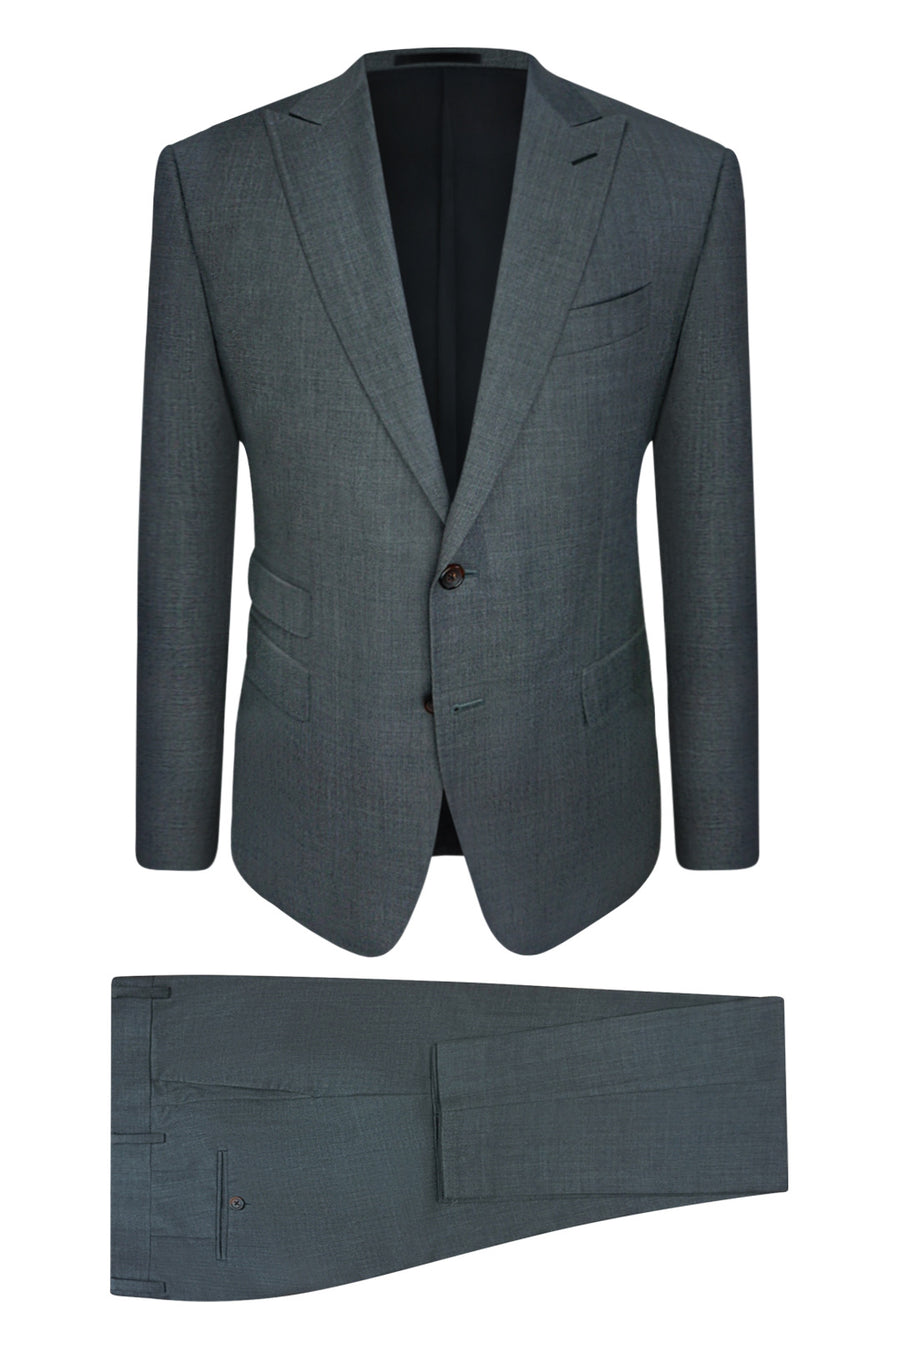 Medium Grey Suit Jacket